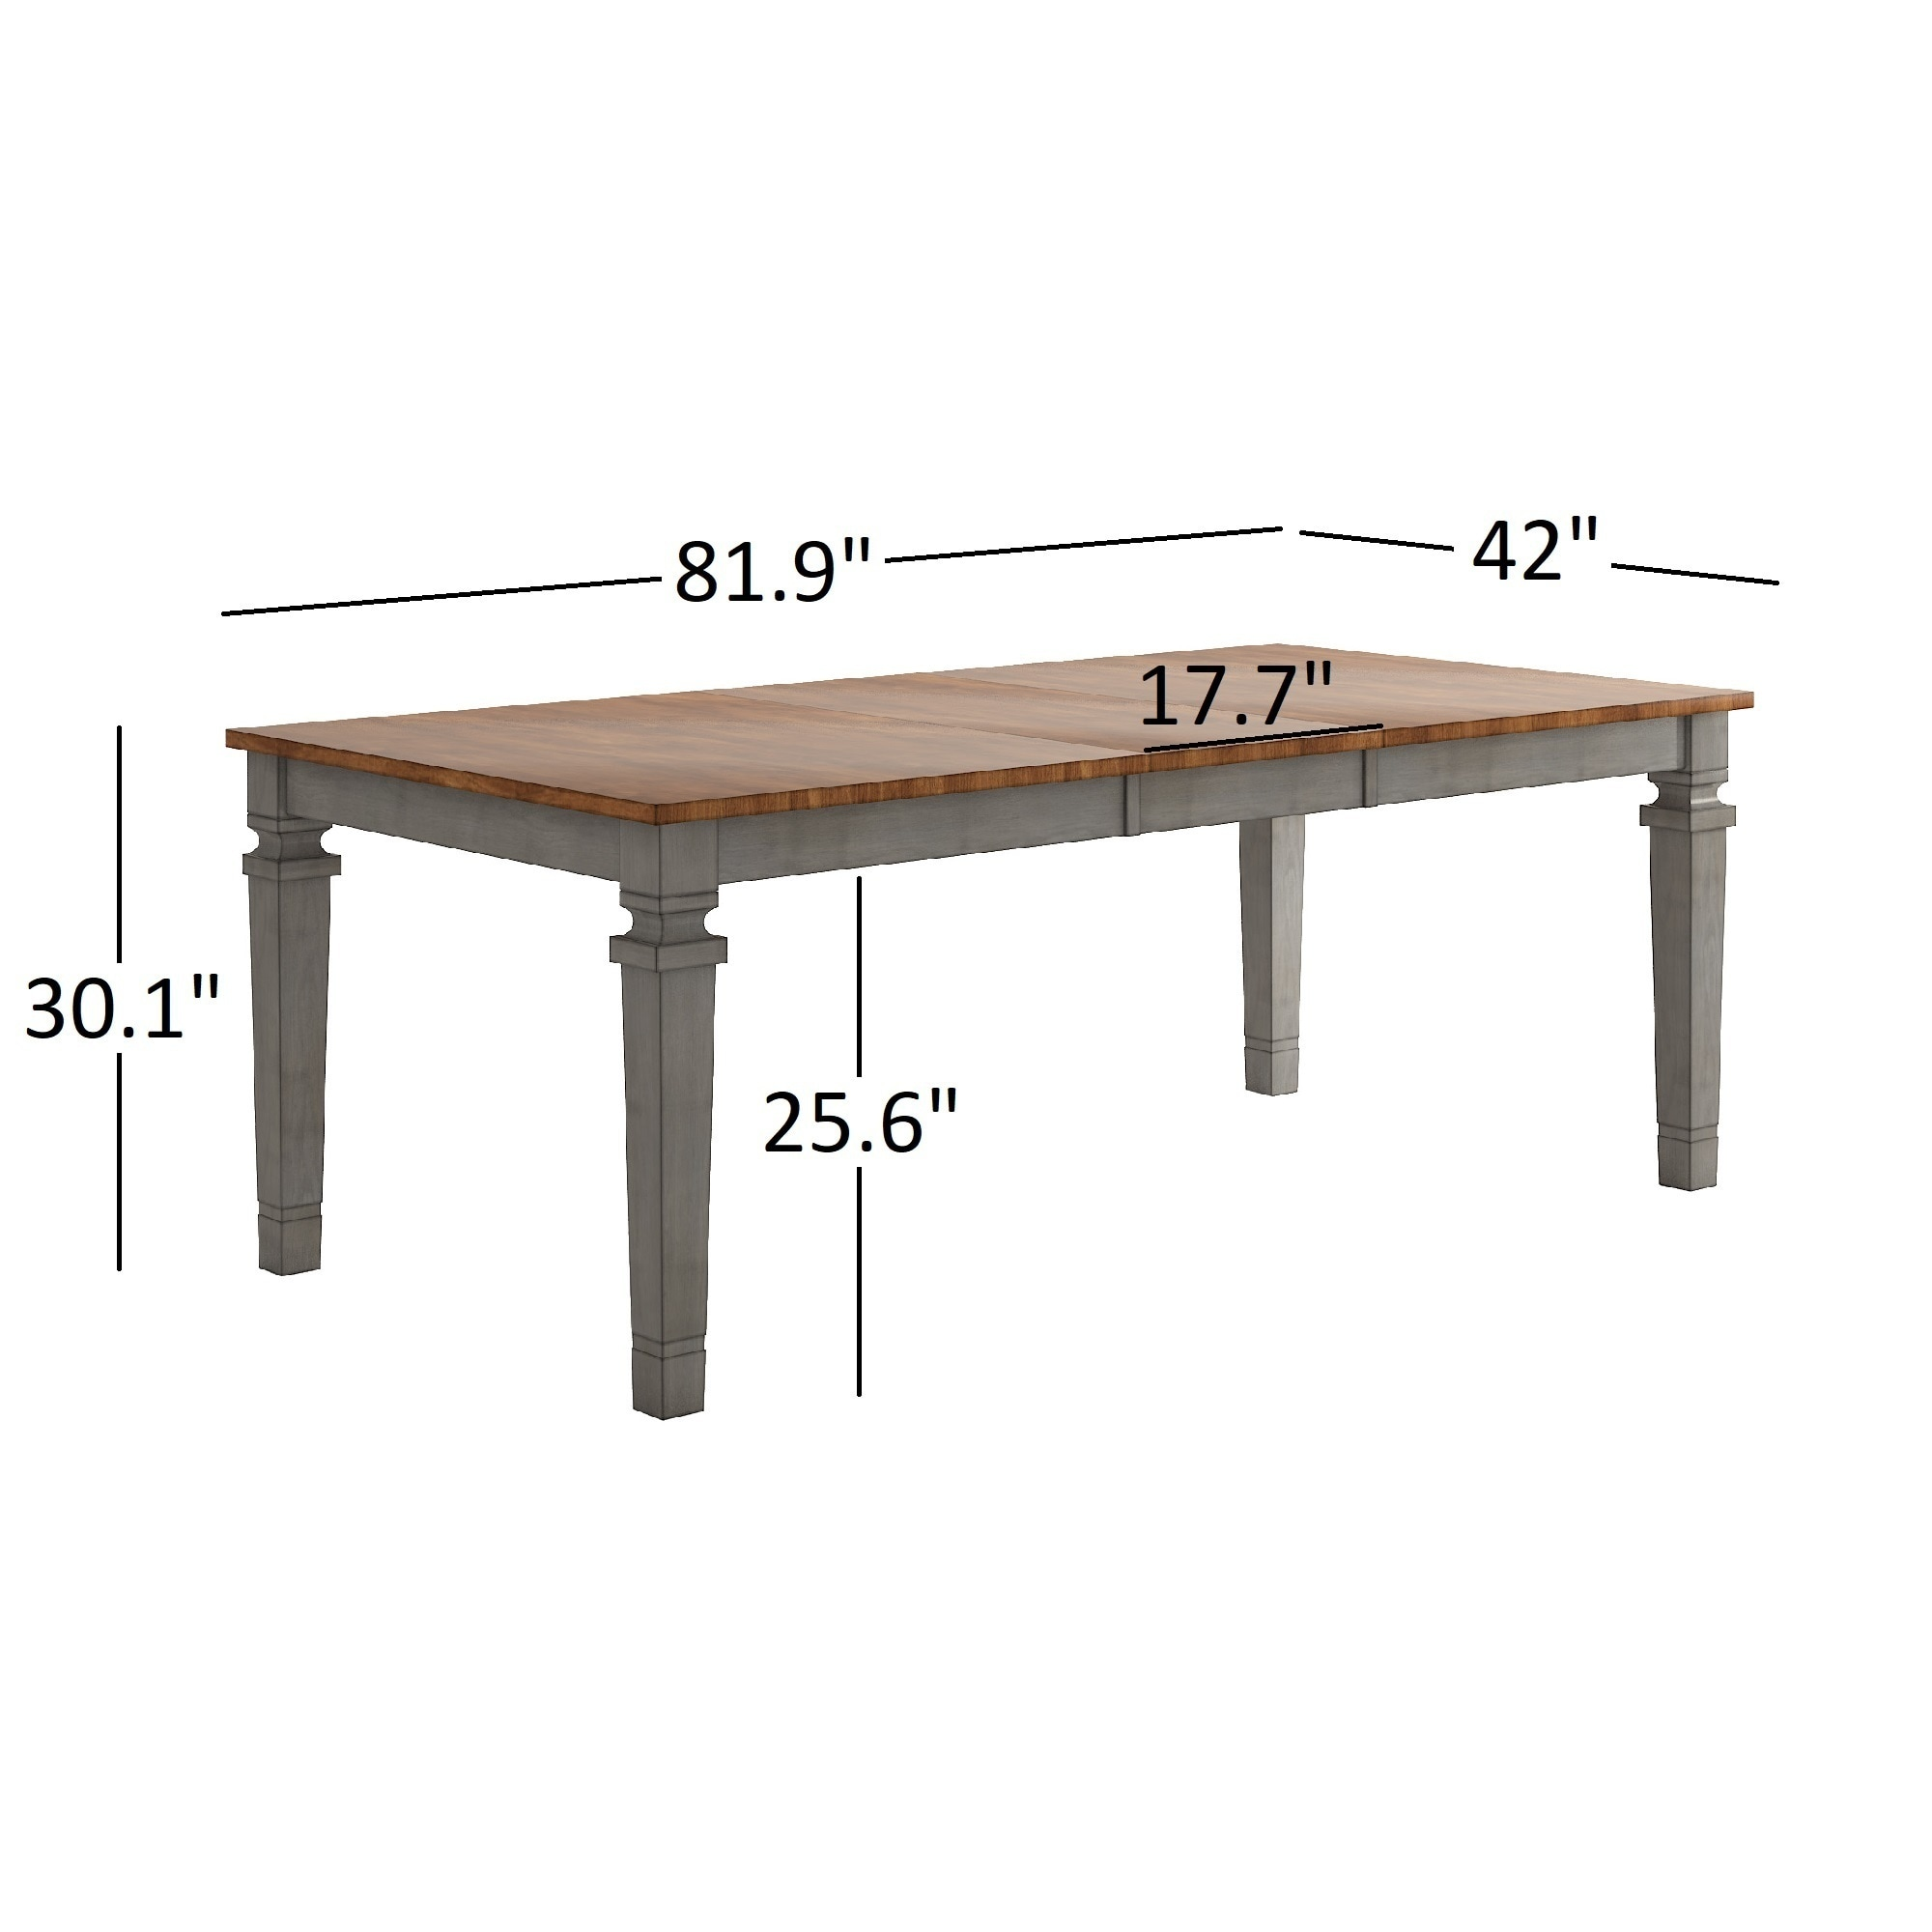 Elena Solid Wood Extendable Rectangular Dining Table By Inspire Q Clic Free Shipping Today 18519160